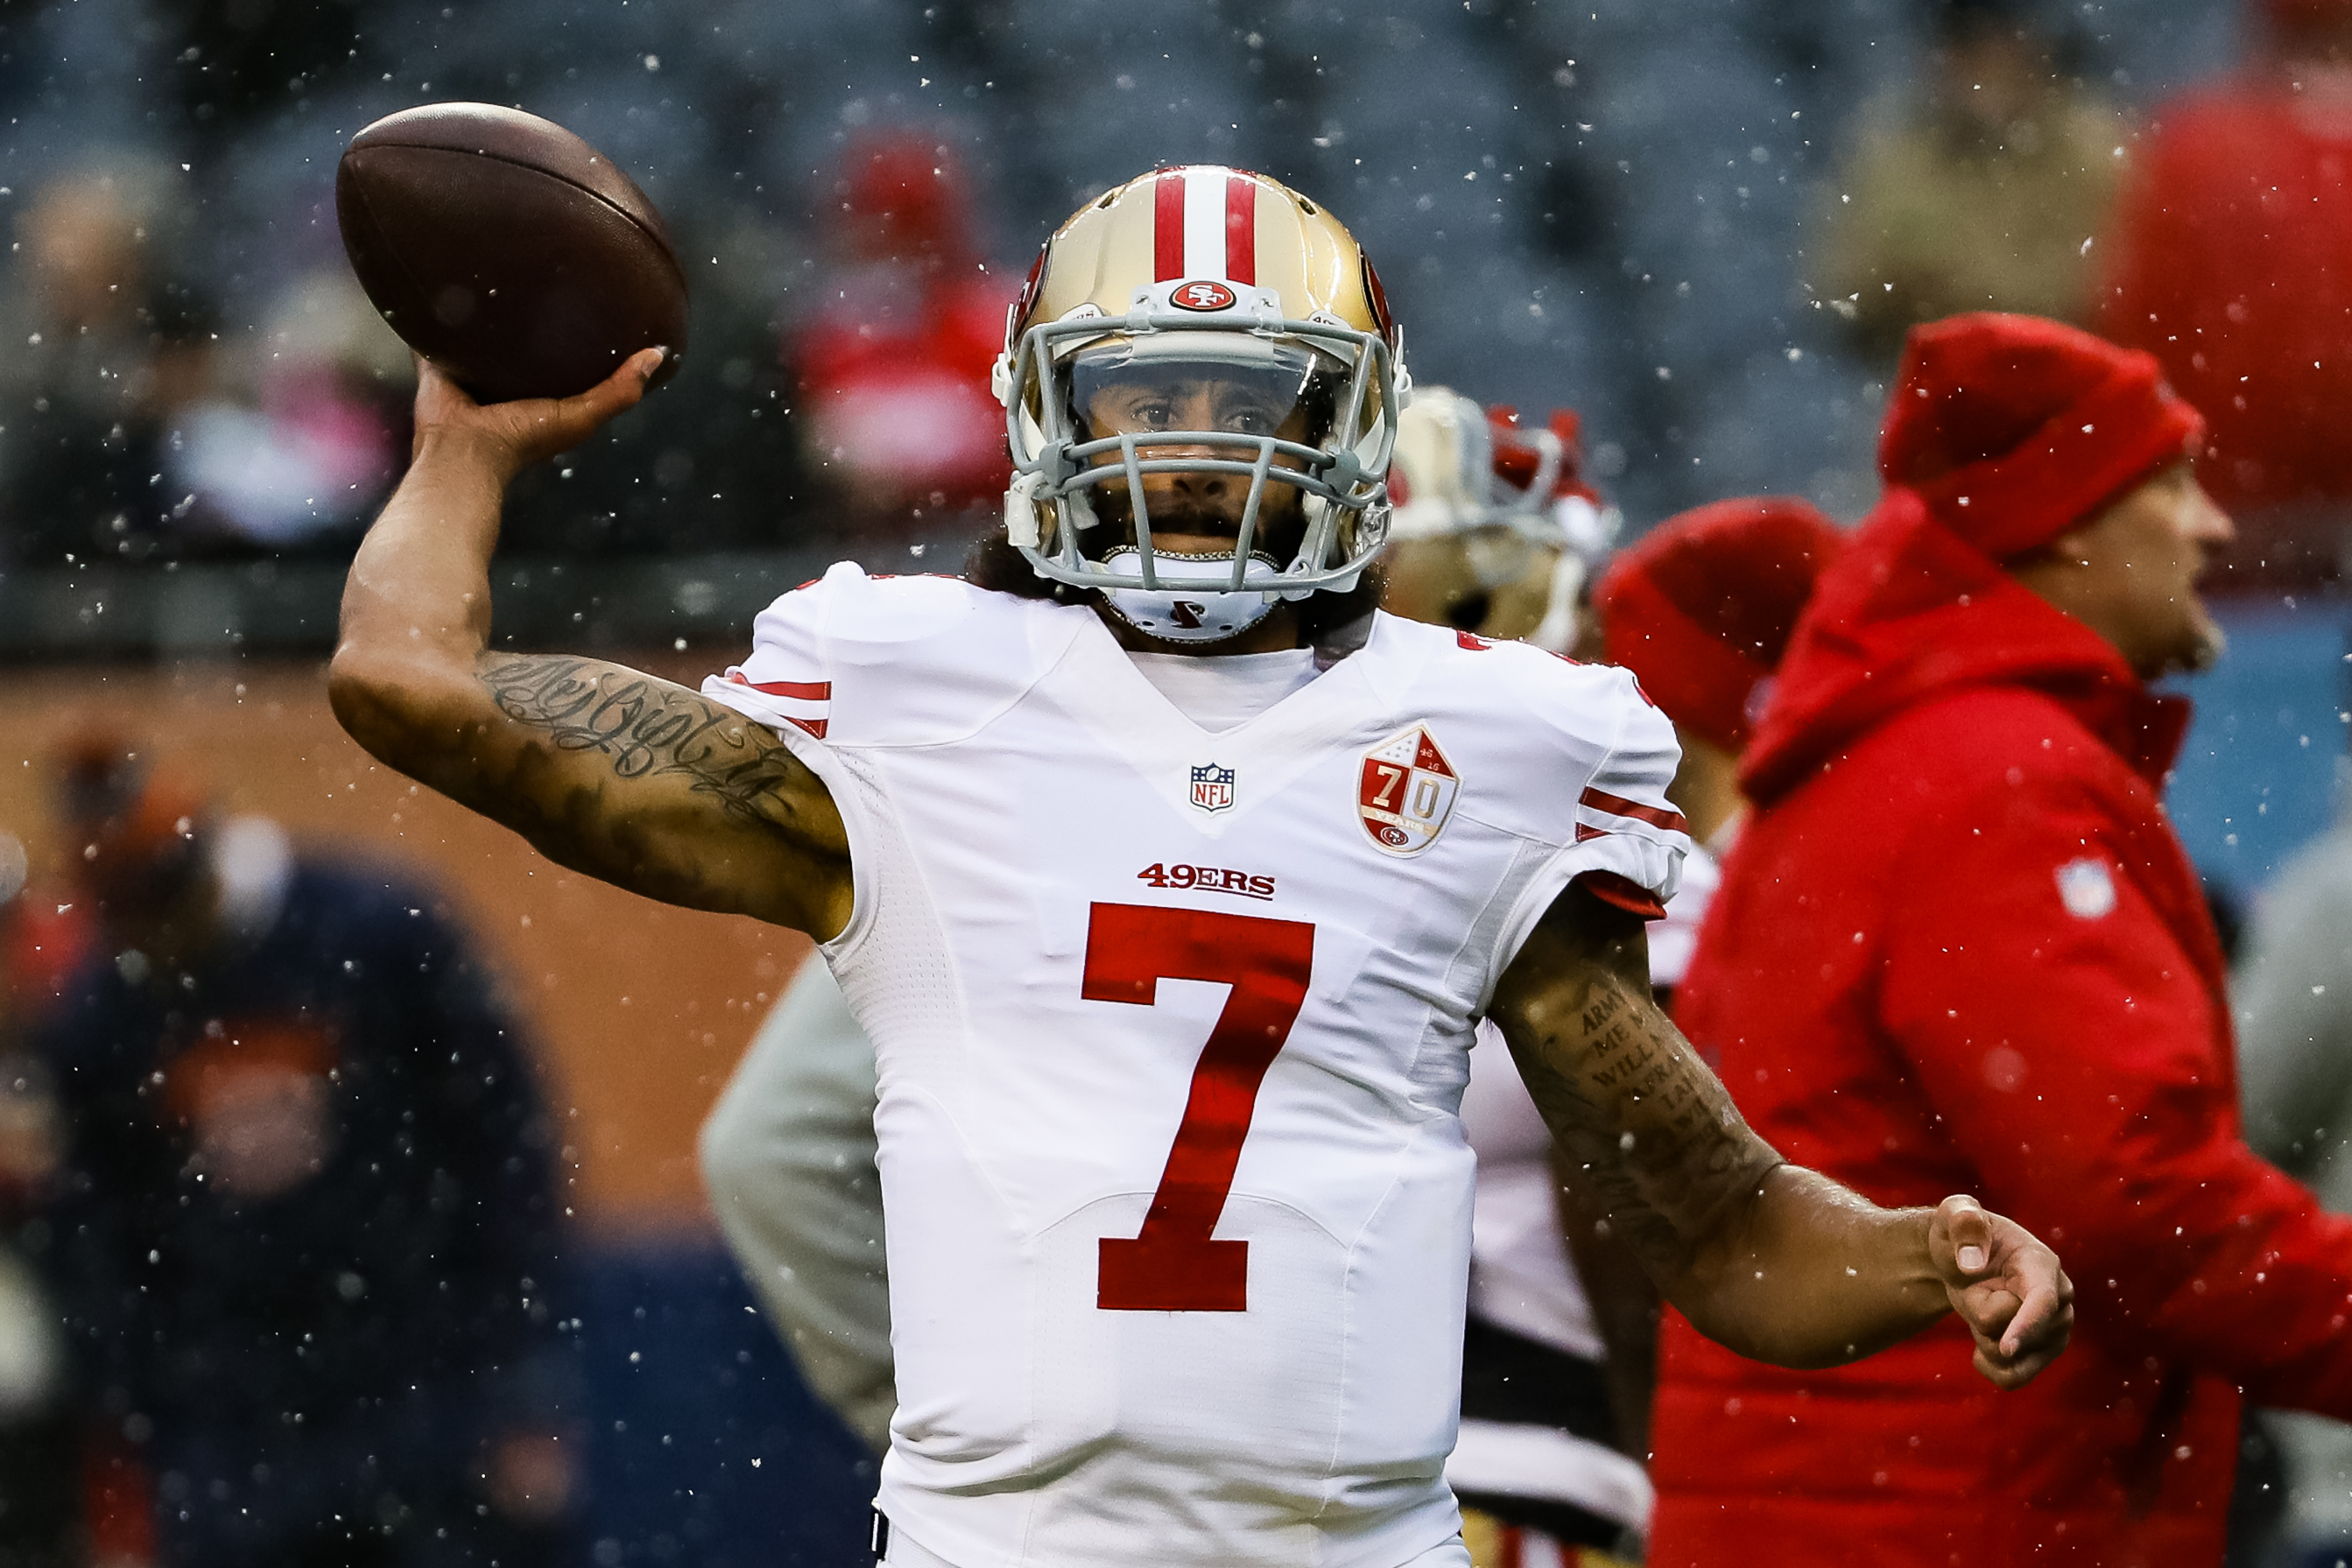 Despite the unusual circumstances, Colin Kaepernick intends to take advantage of his workout for NFL scouts on Saturday.